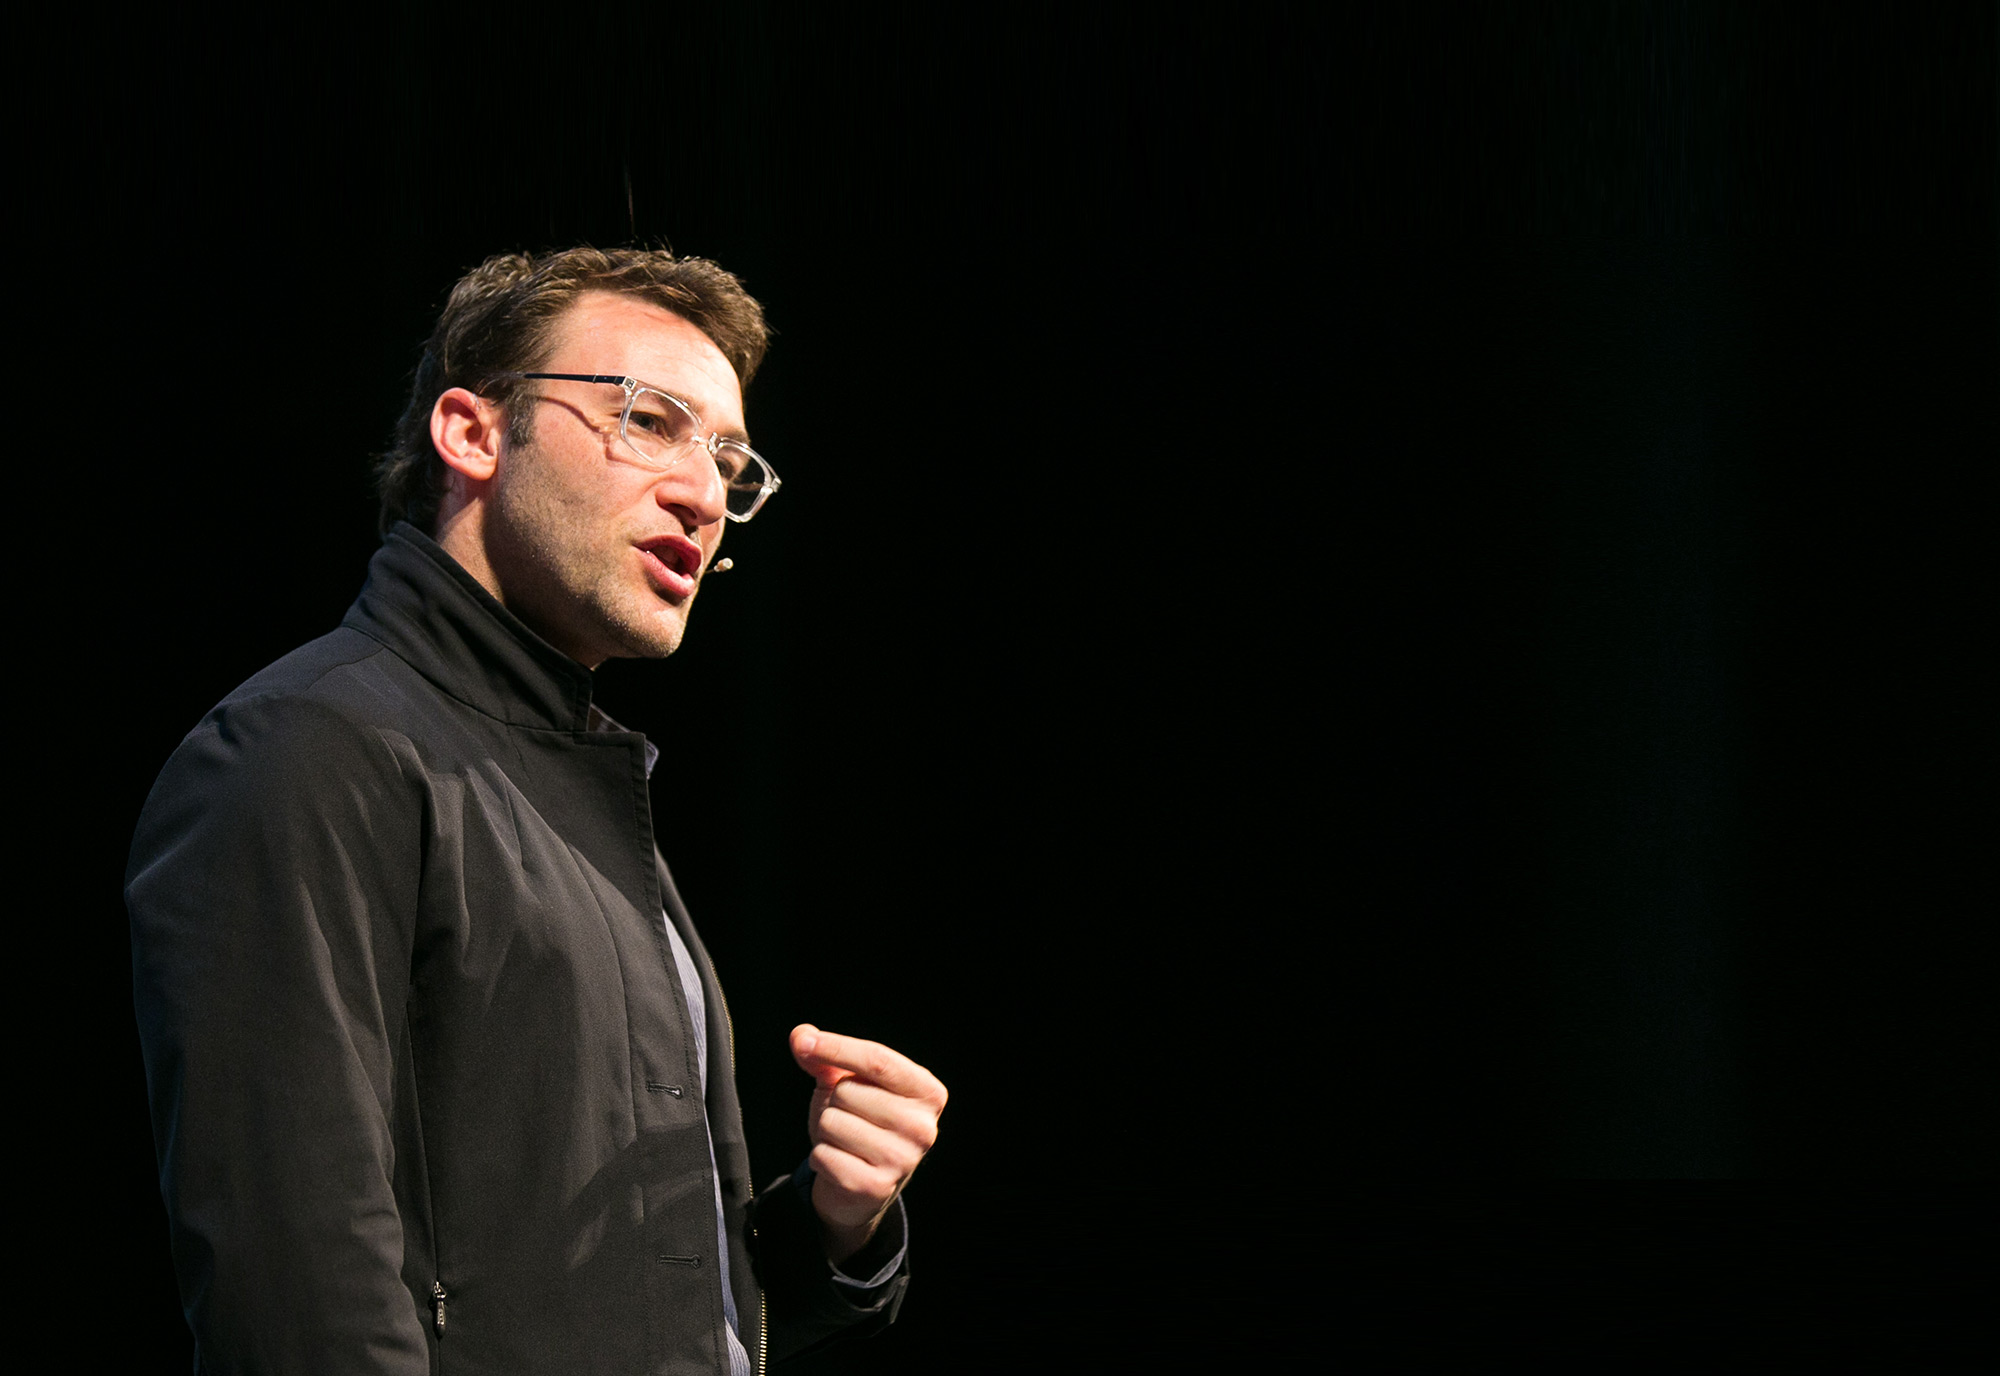 simon sinek leadership social innovation and social entrepreneurship